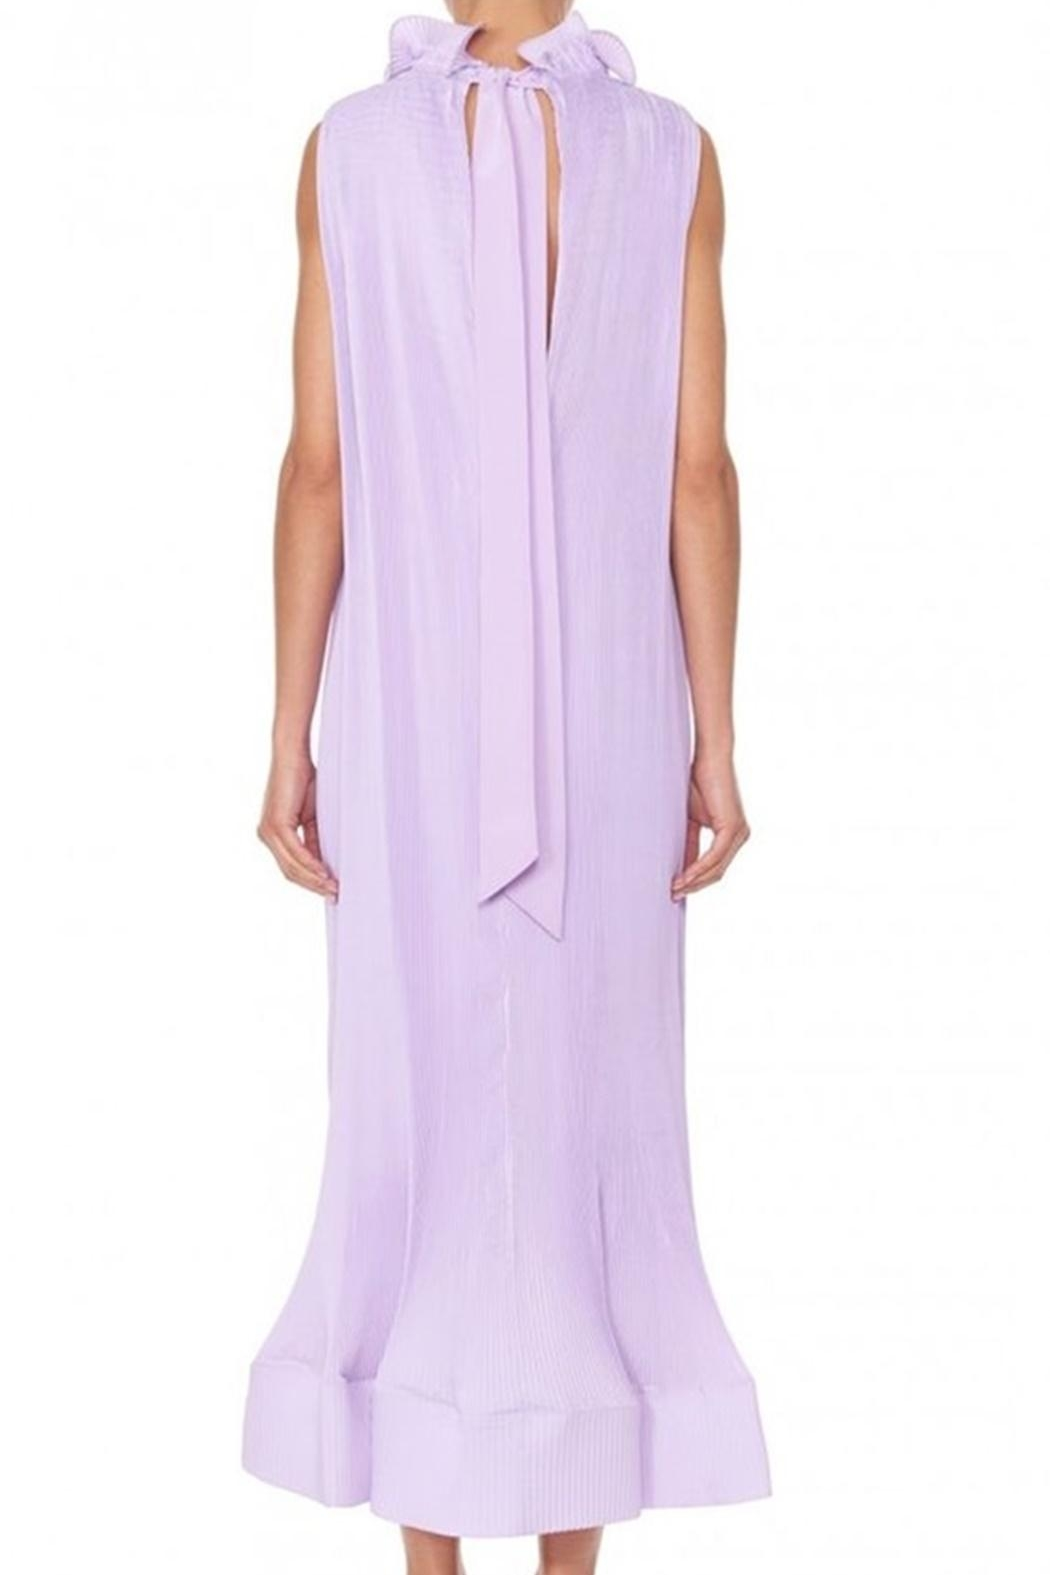 Tibi Pleating Sleeveless Dress - Side Cropped Image